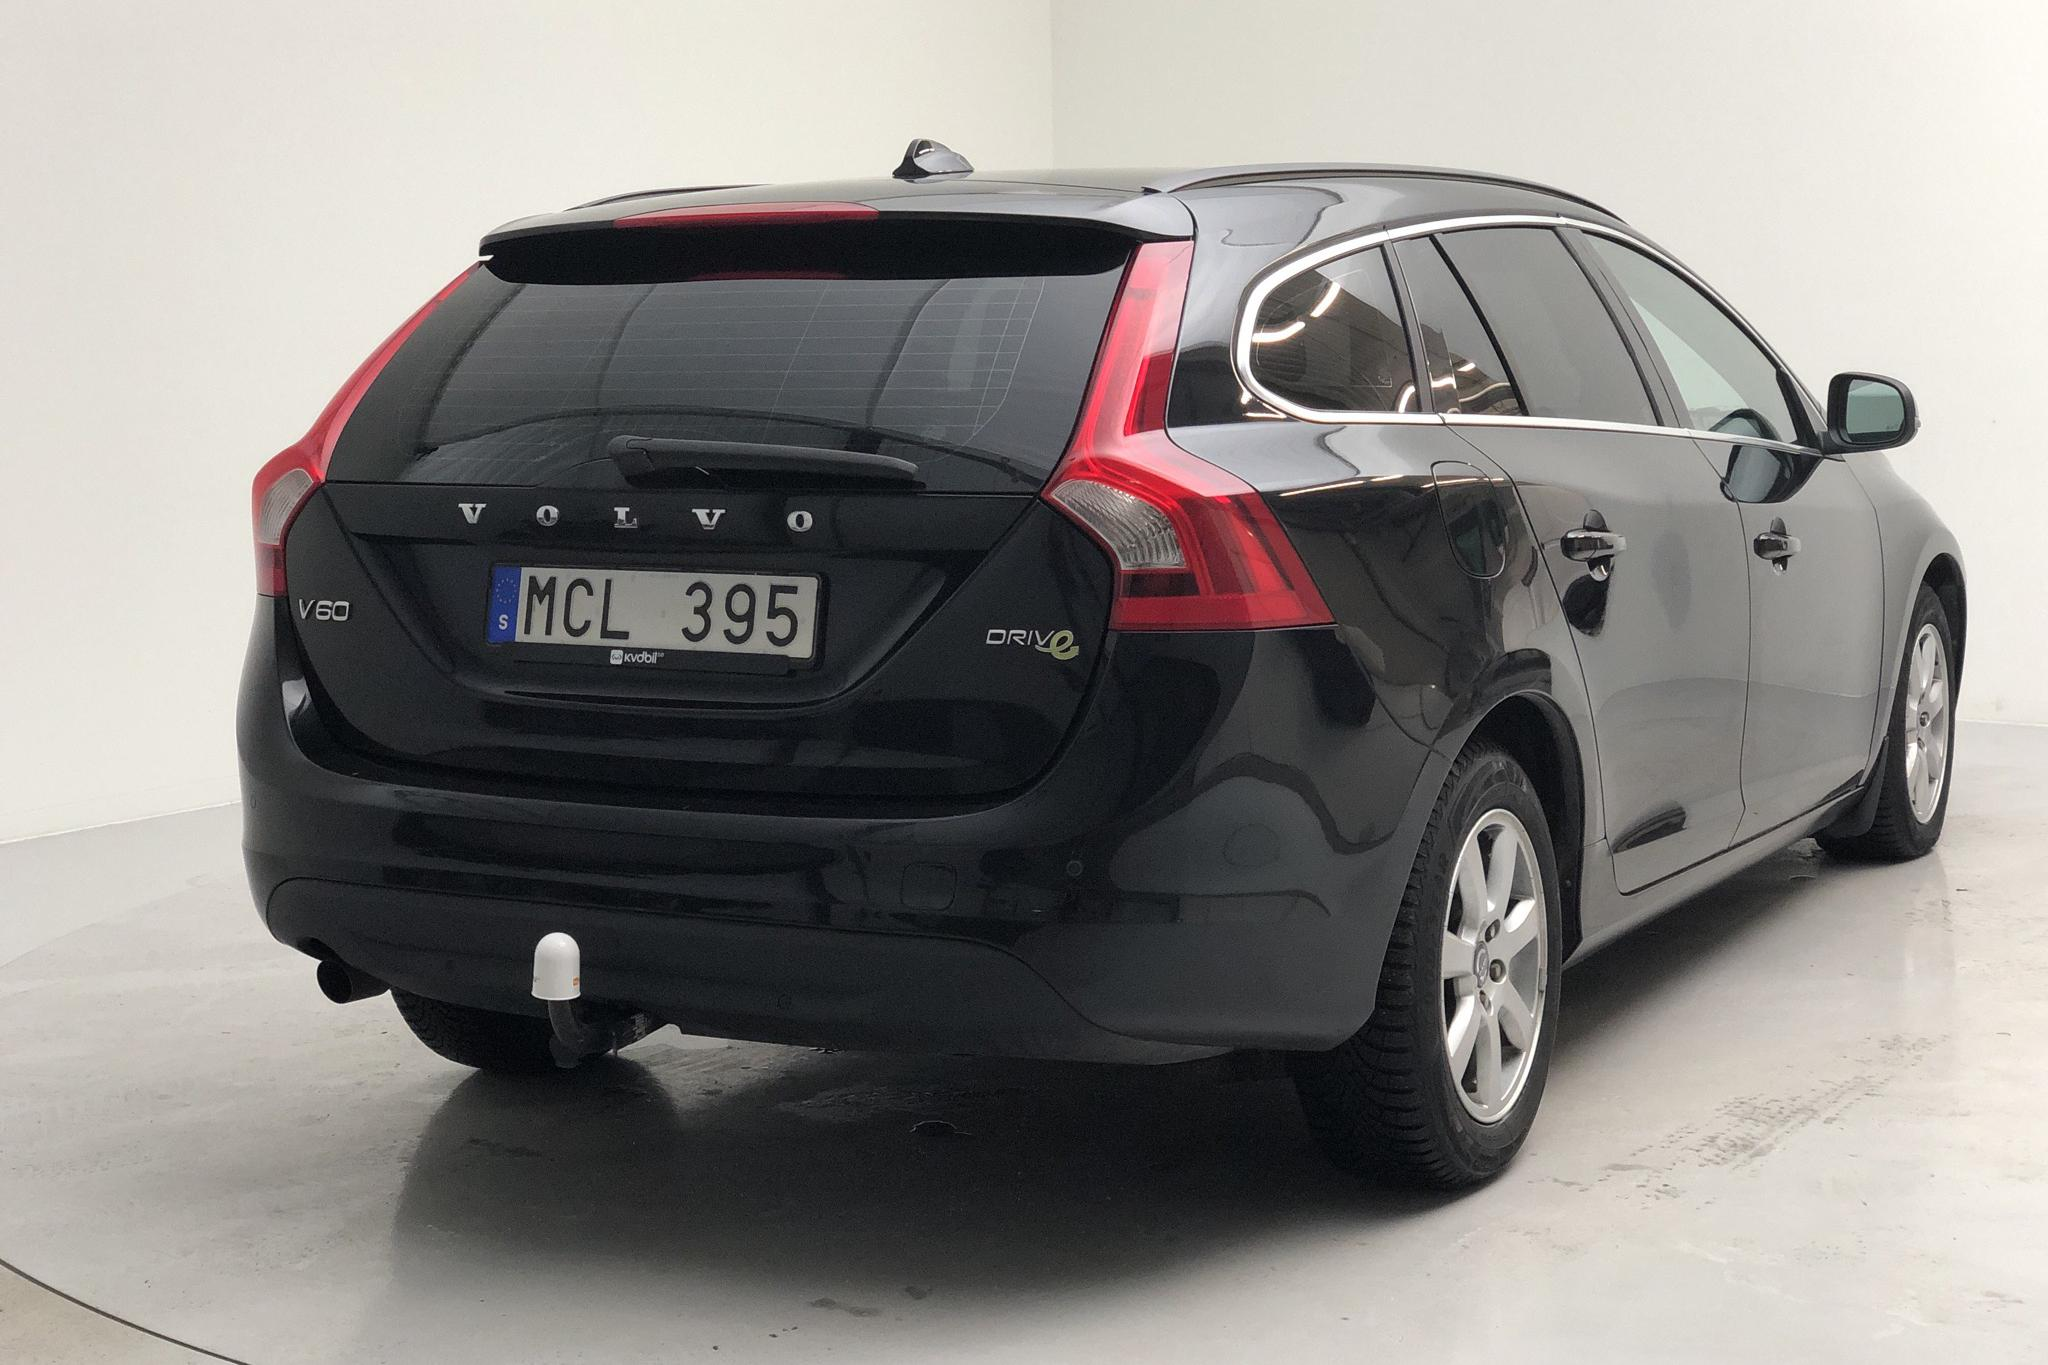 Volvo V60 1.6D DRIVe (115hk) - 225 240 km - Manual - black - 2012